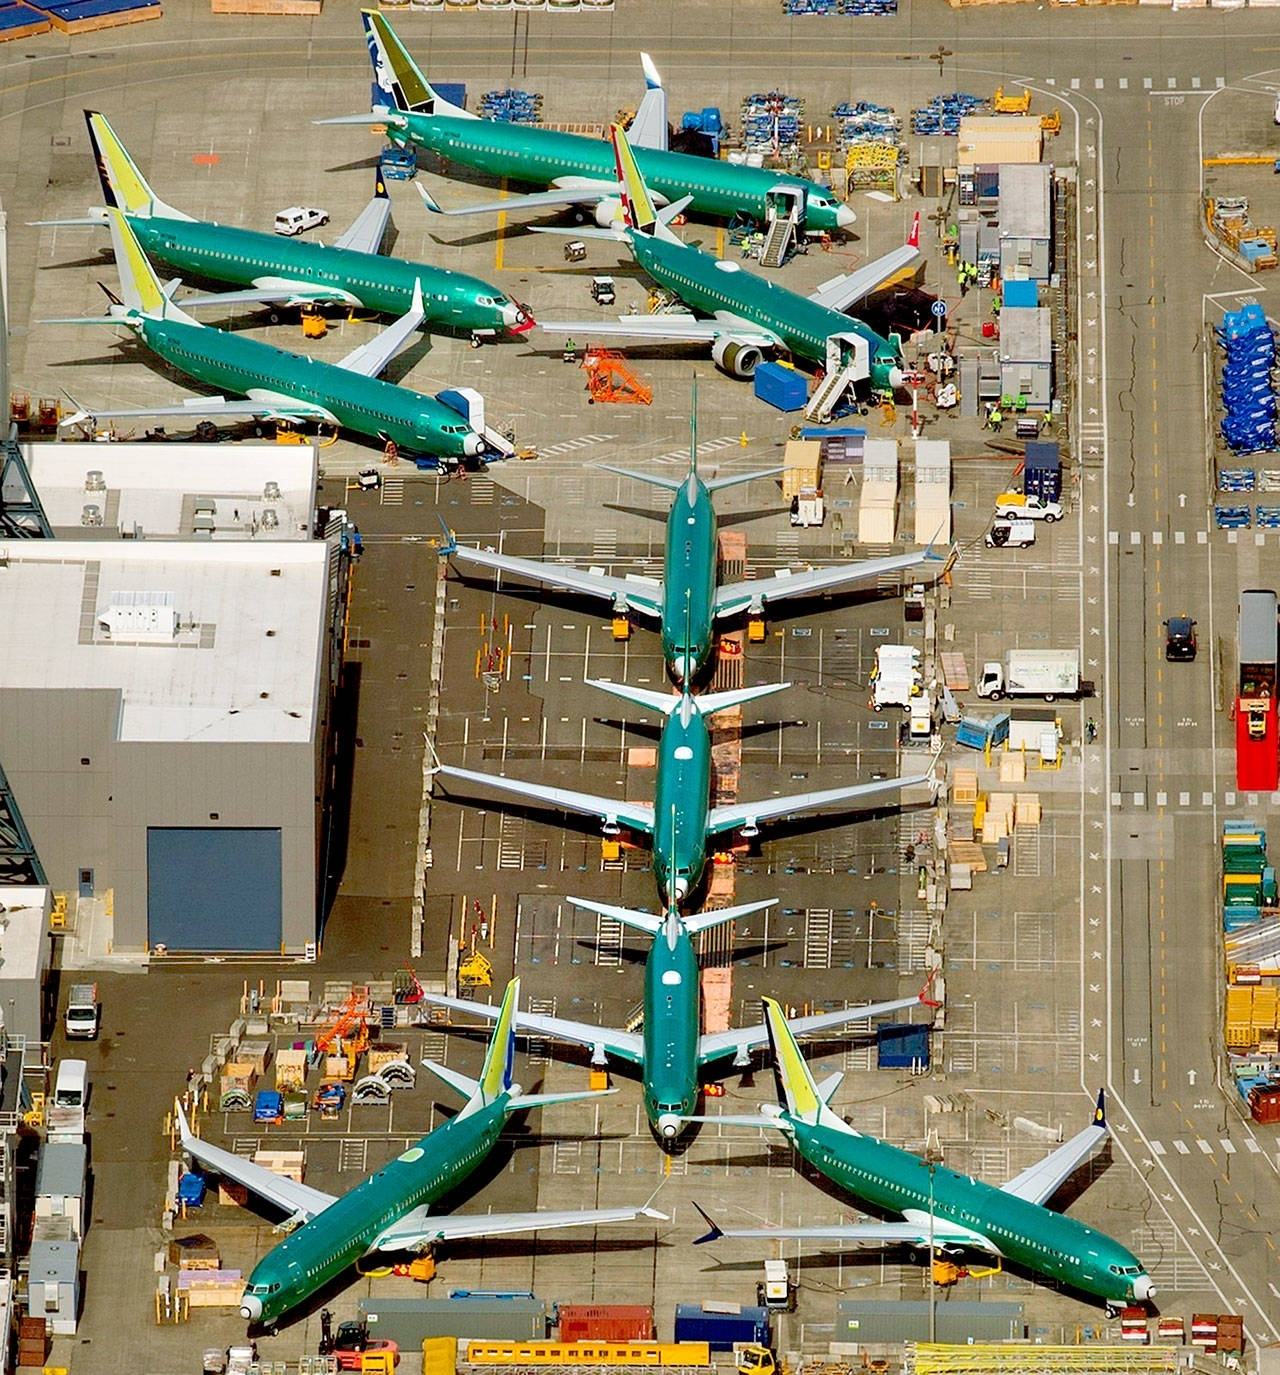 Boeing Faces Hurdles To Return The 737 Max Fleet To Service inside Boeing Renton Plant Site Map